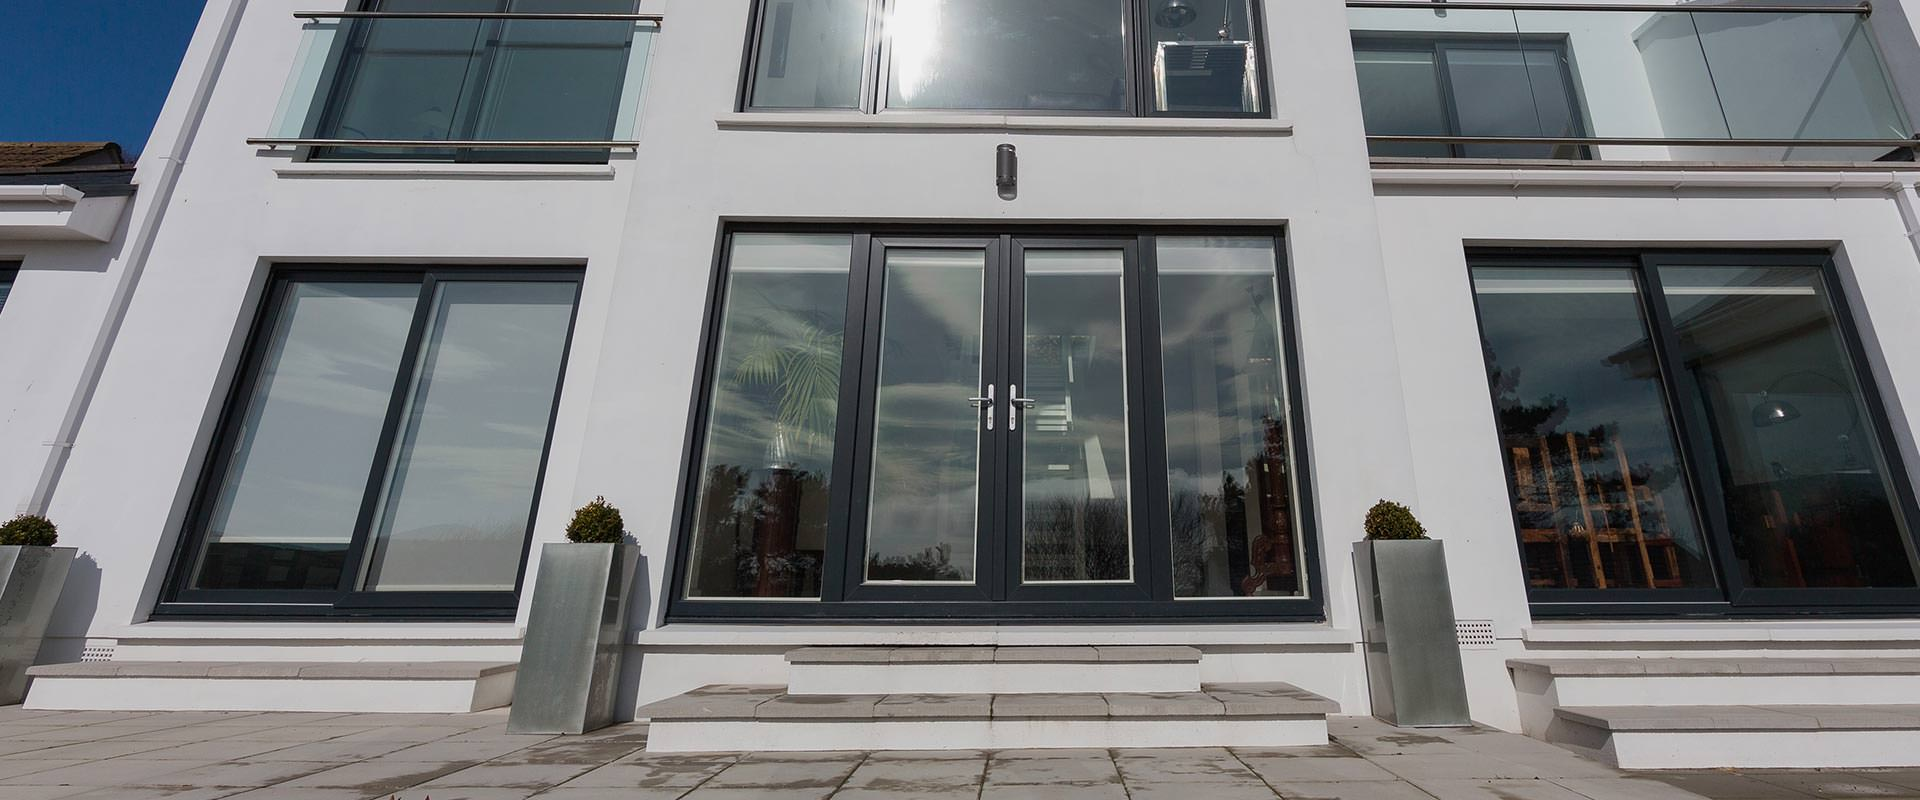 Upvc french doors chigwell essex french doors essex classic and contemporary upvc french doors rubansaba